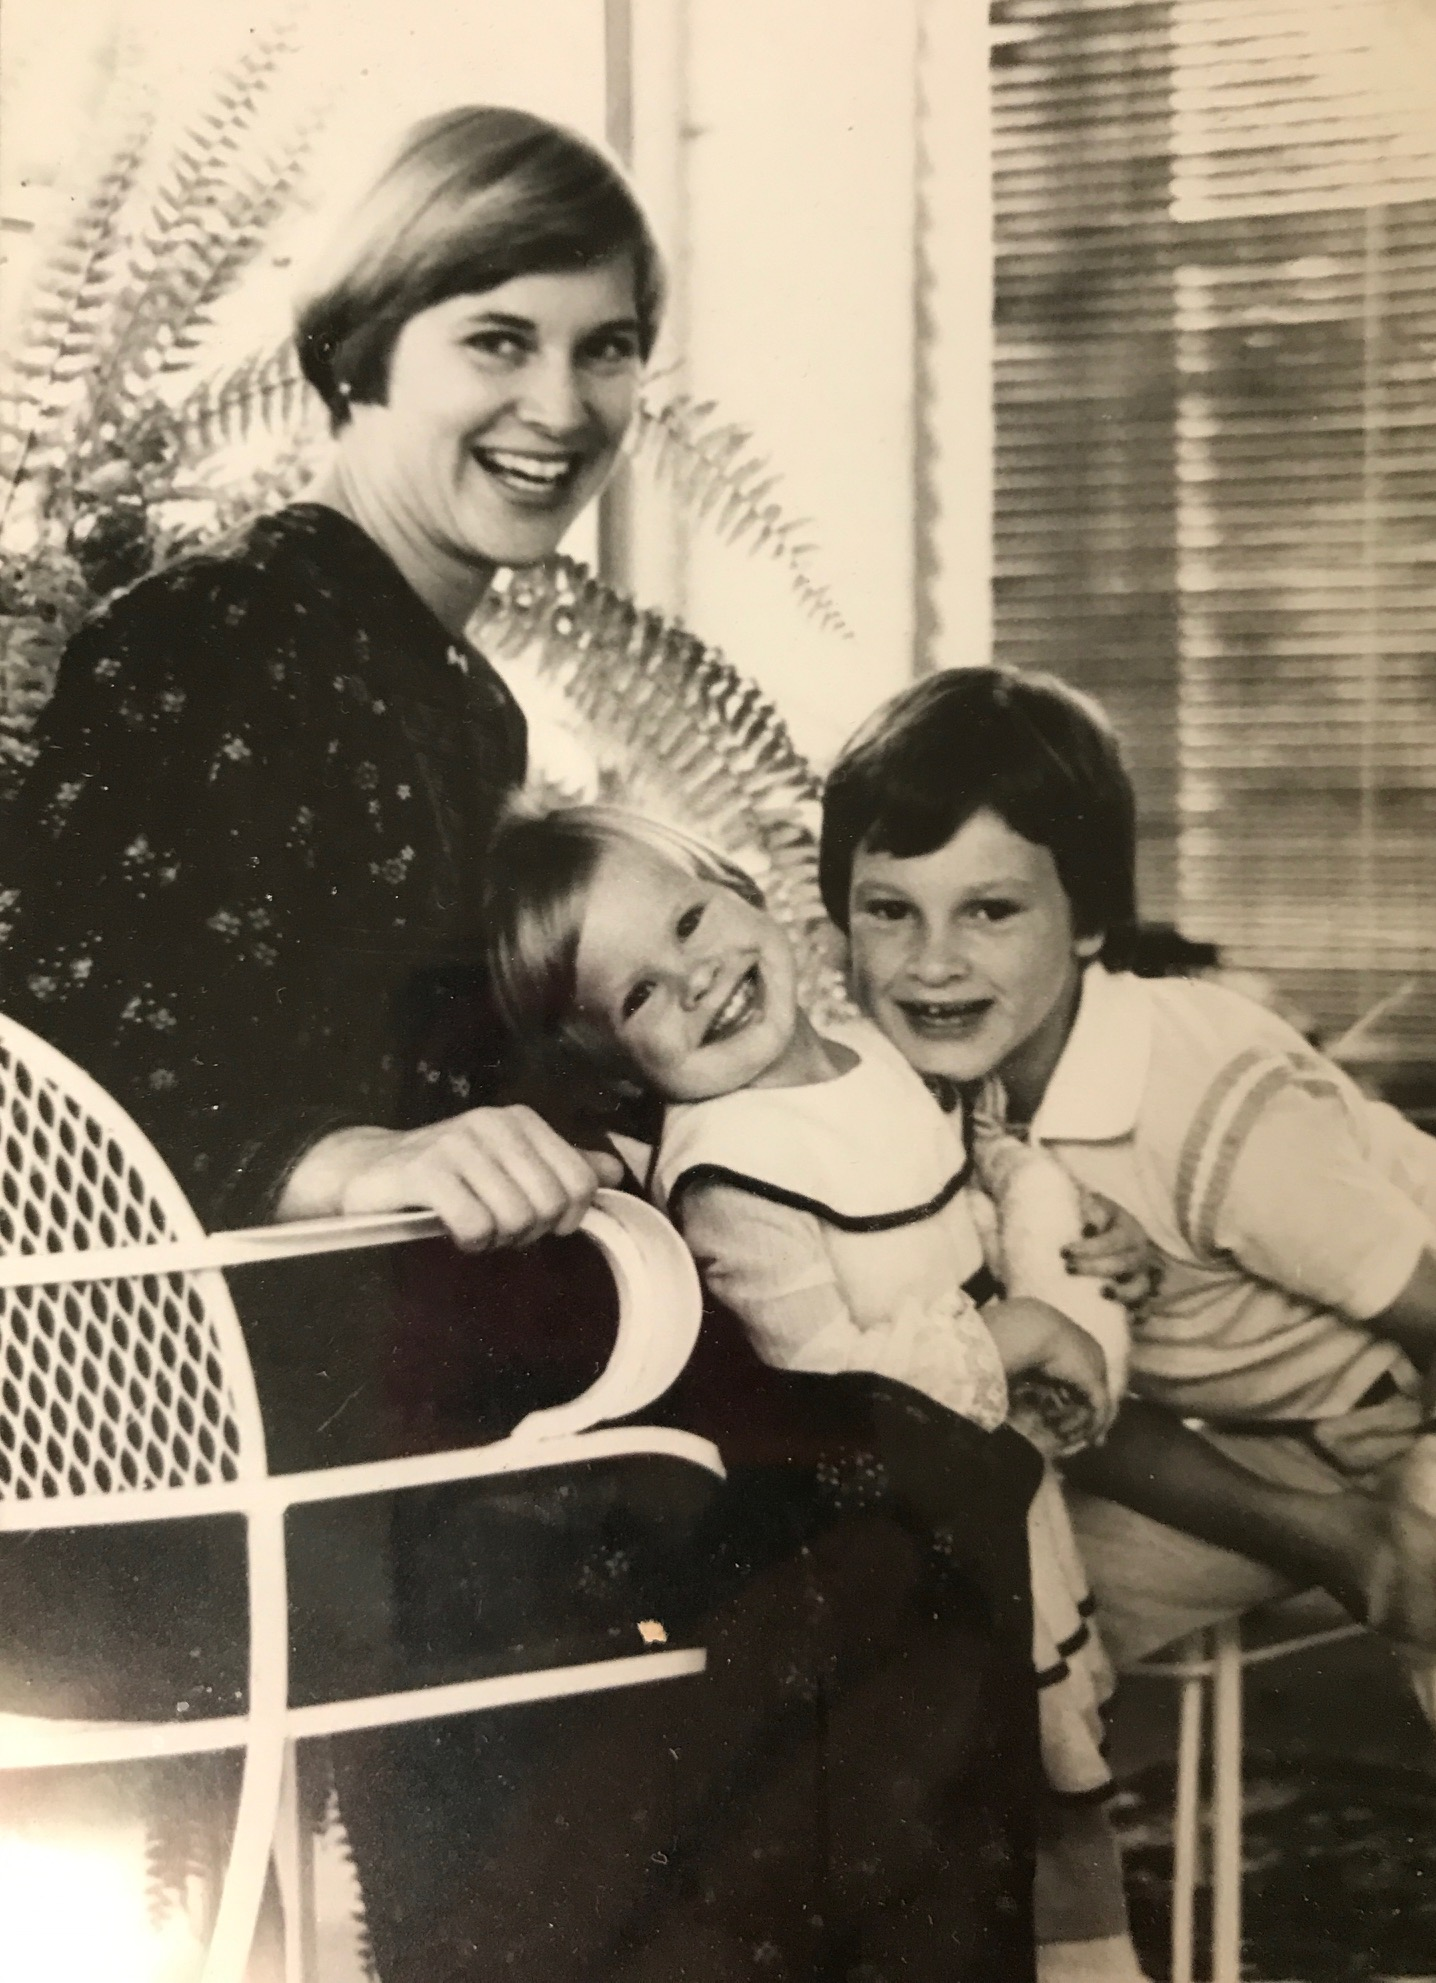 My mother, Susan, with me and my brother Patrick